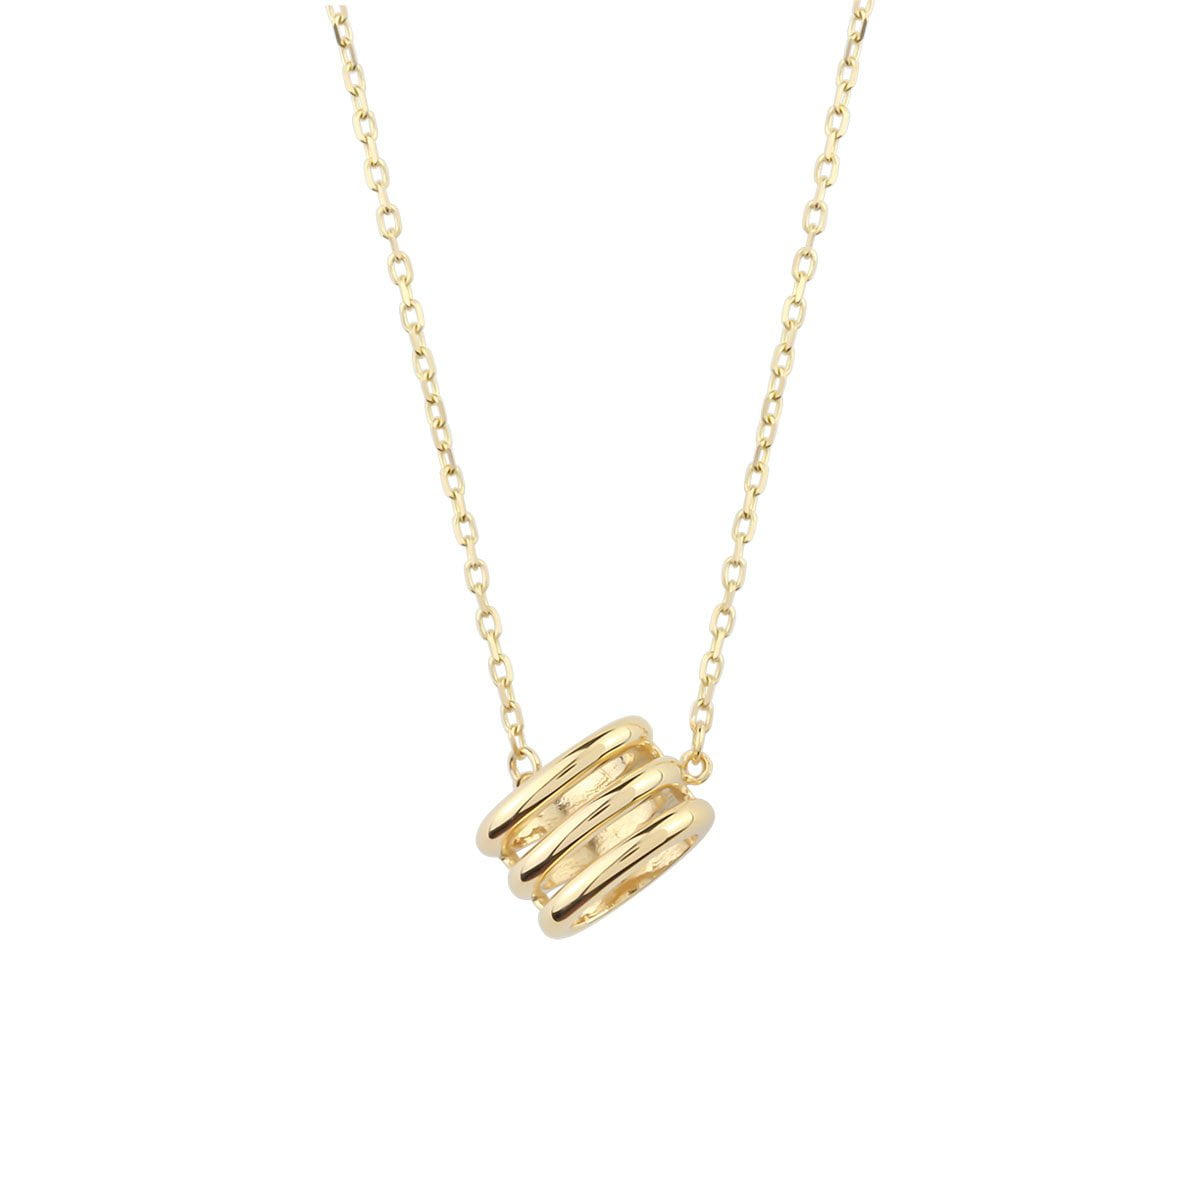 Noemi Honeycomb 18ct Gold Pendant Necklace